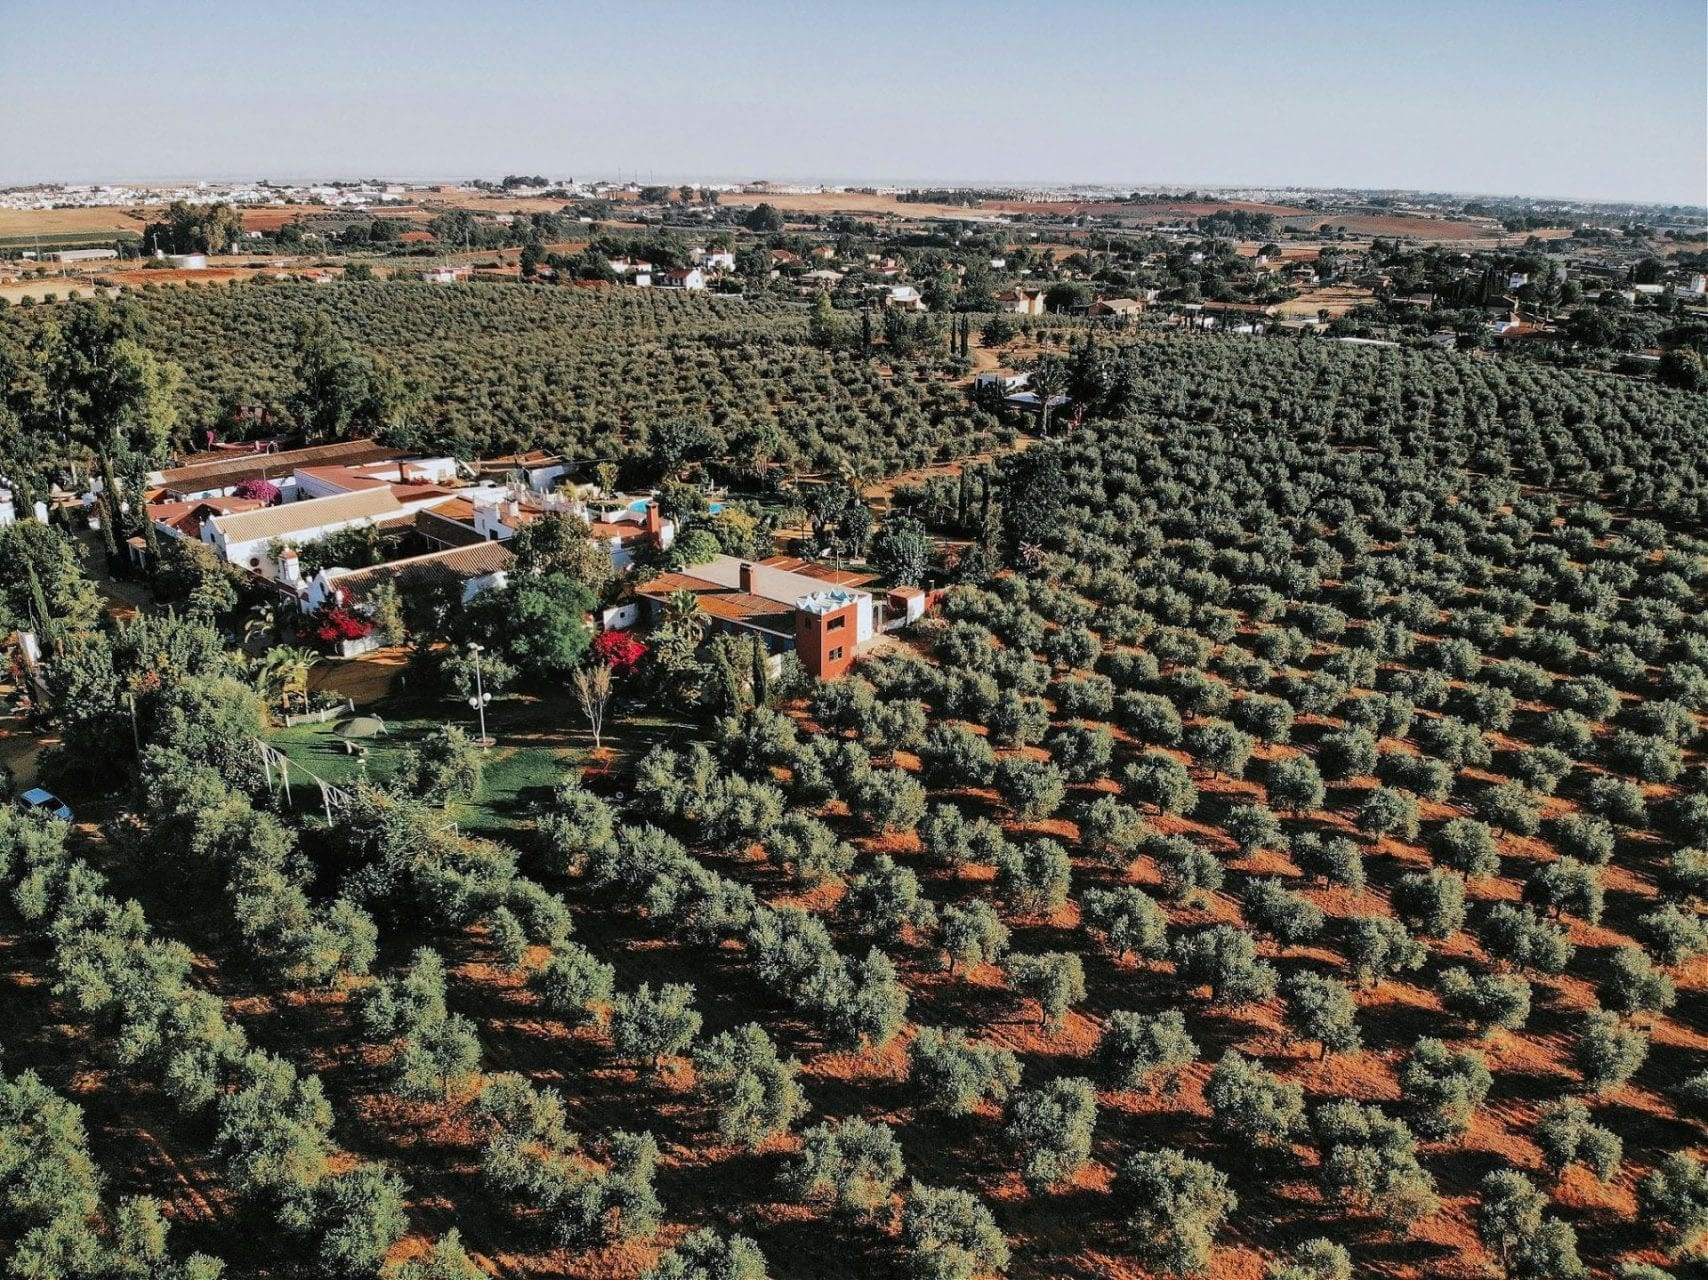 business-production-world-climate-and-covid-worry-farmers-preparing-for-harvest-olive-oil-times